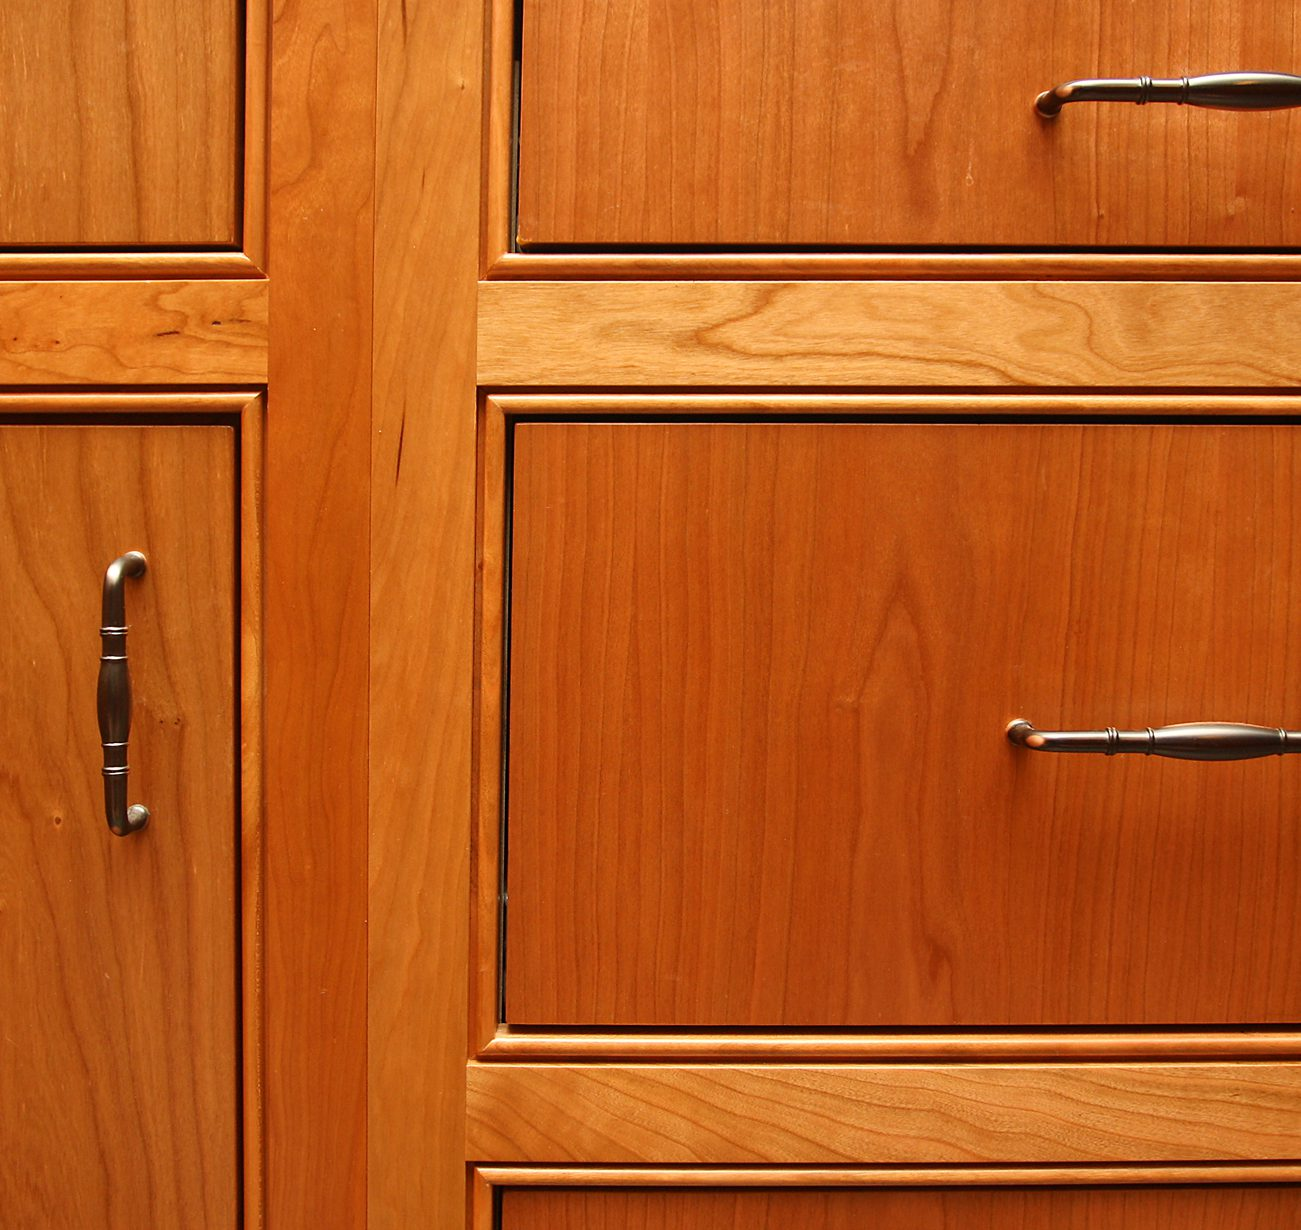 Beaded Kitchen Cabinets: Cherry Custom Cabinets With